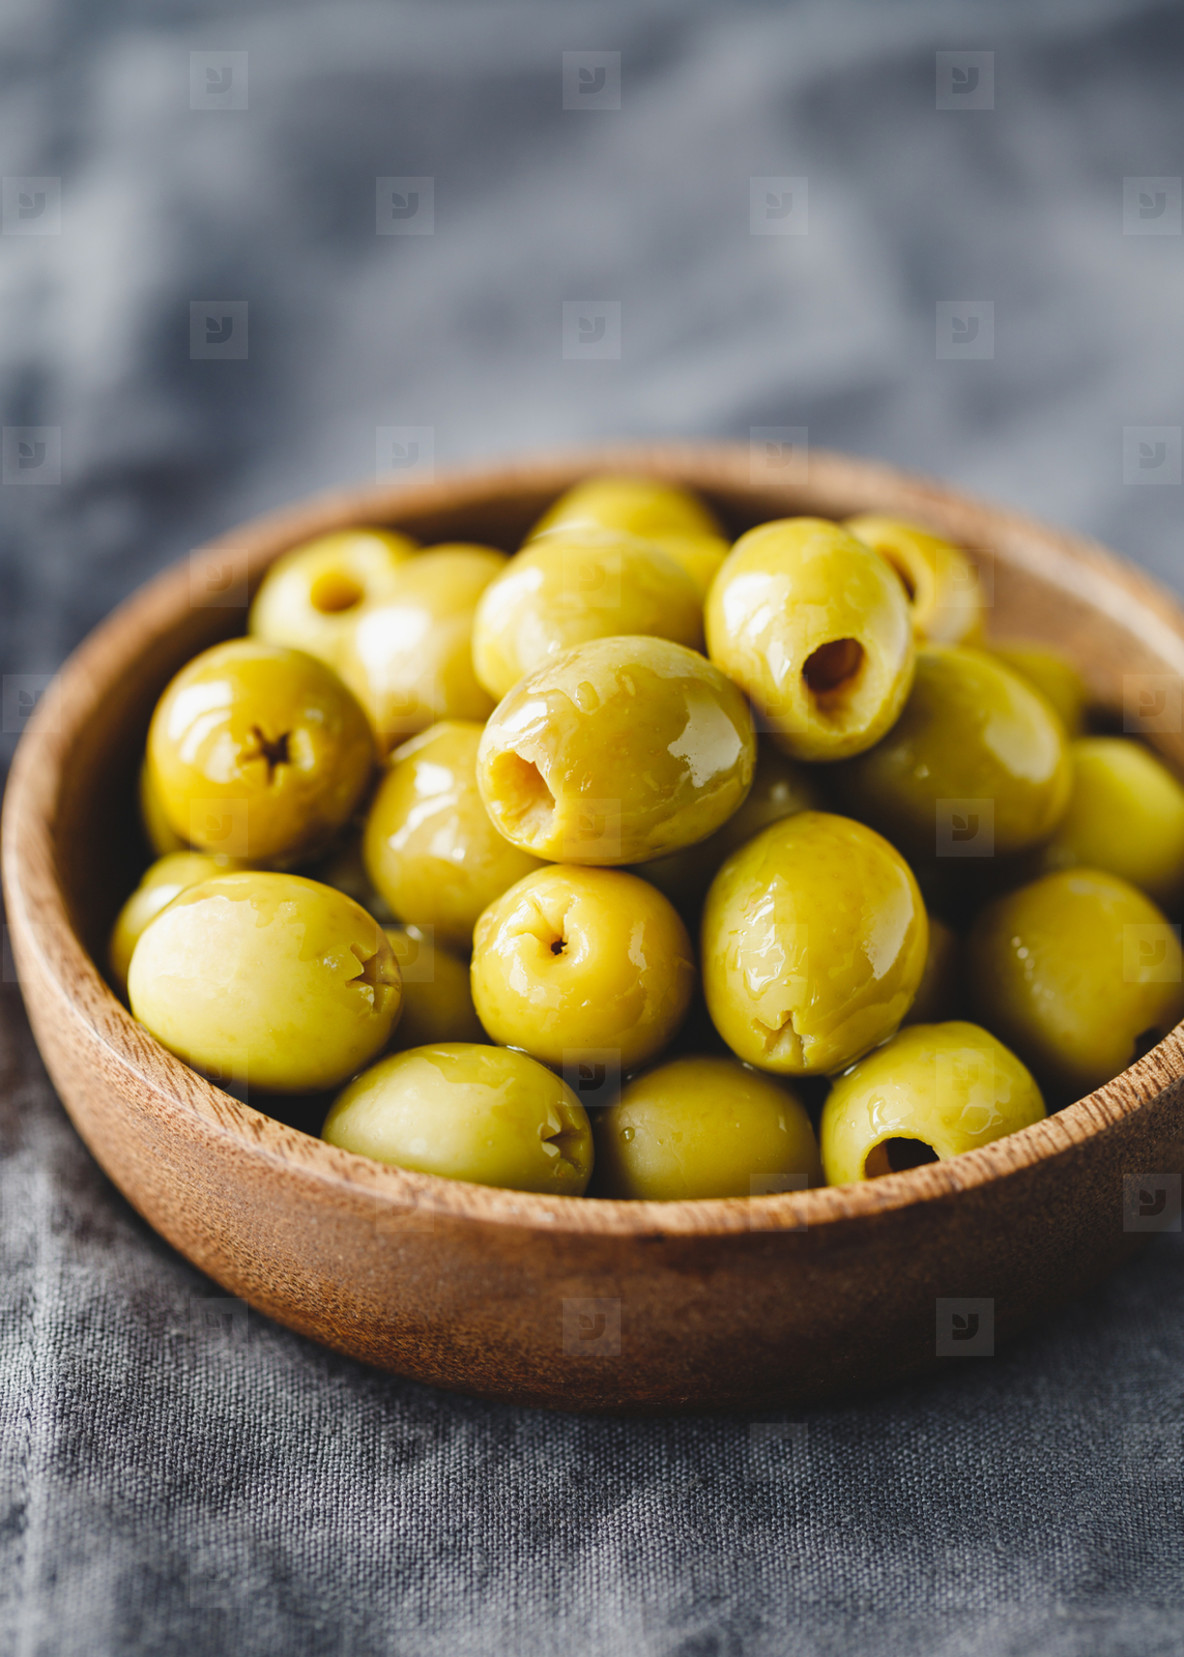 Green olives in a wooden bowl on a table  macro photography